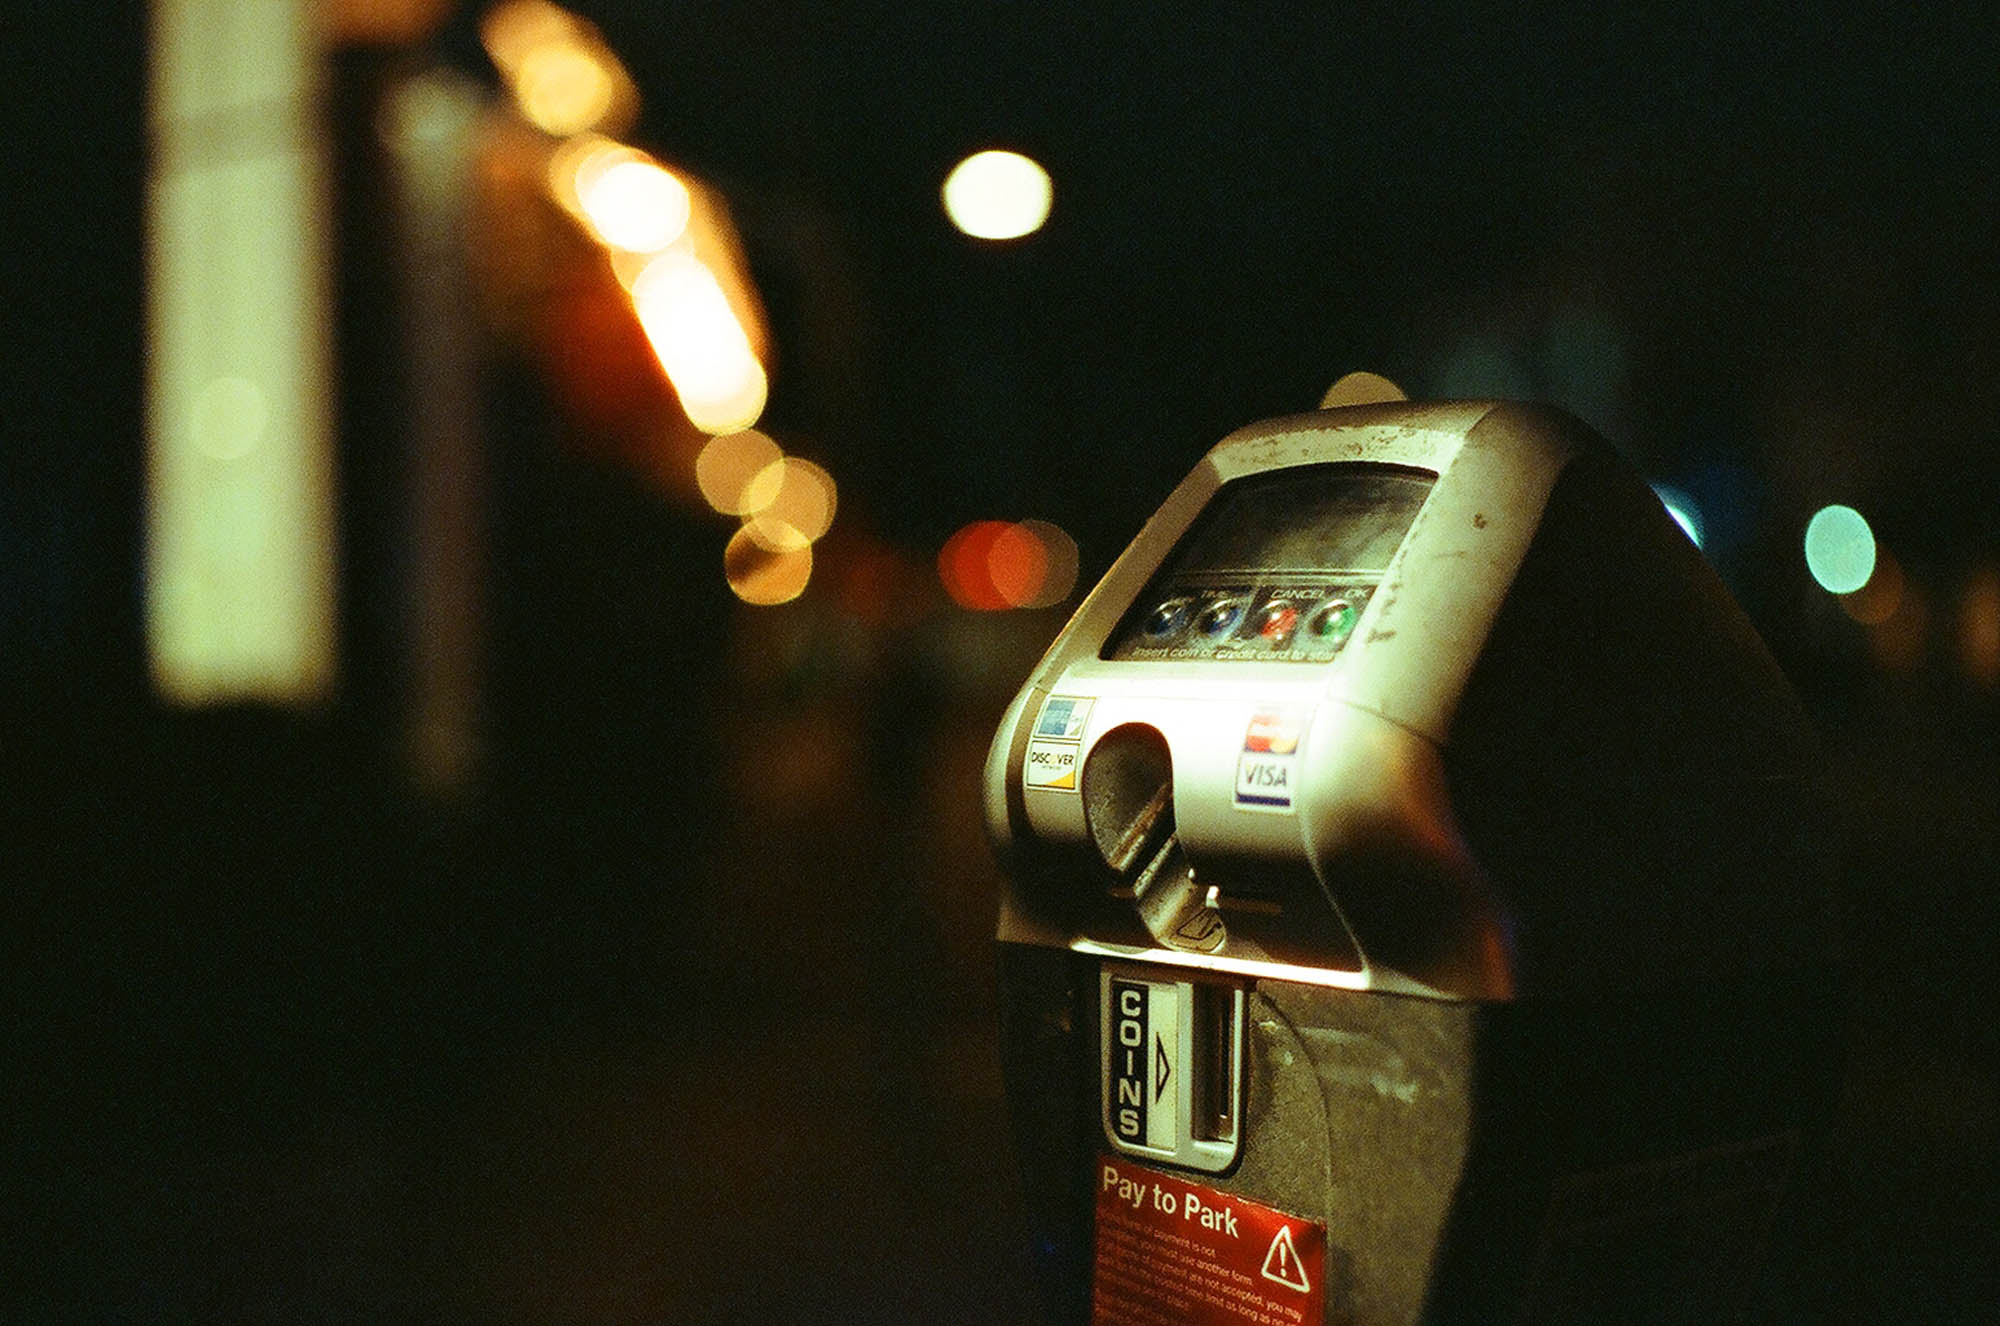 Love the color shift. Taken with a Canon AE-1